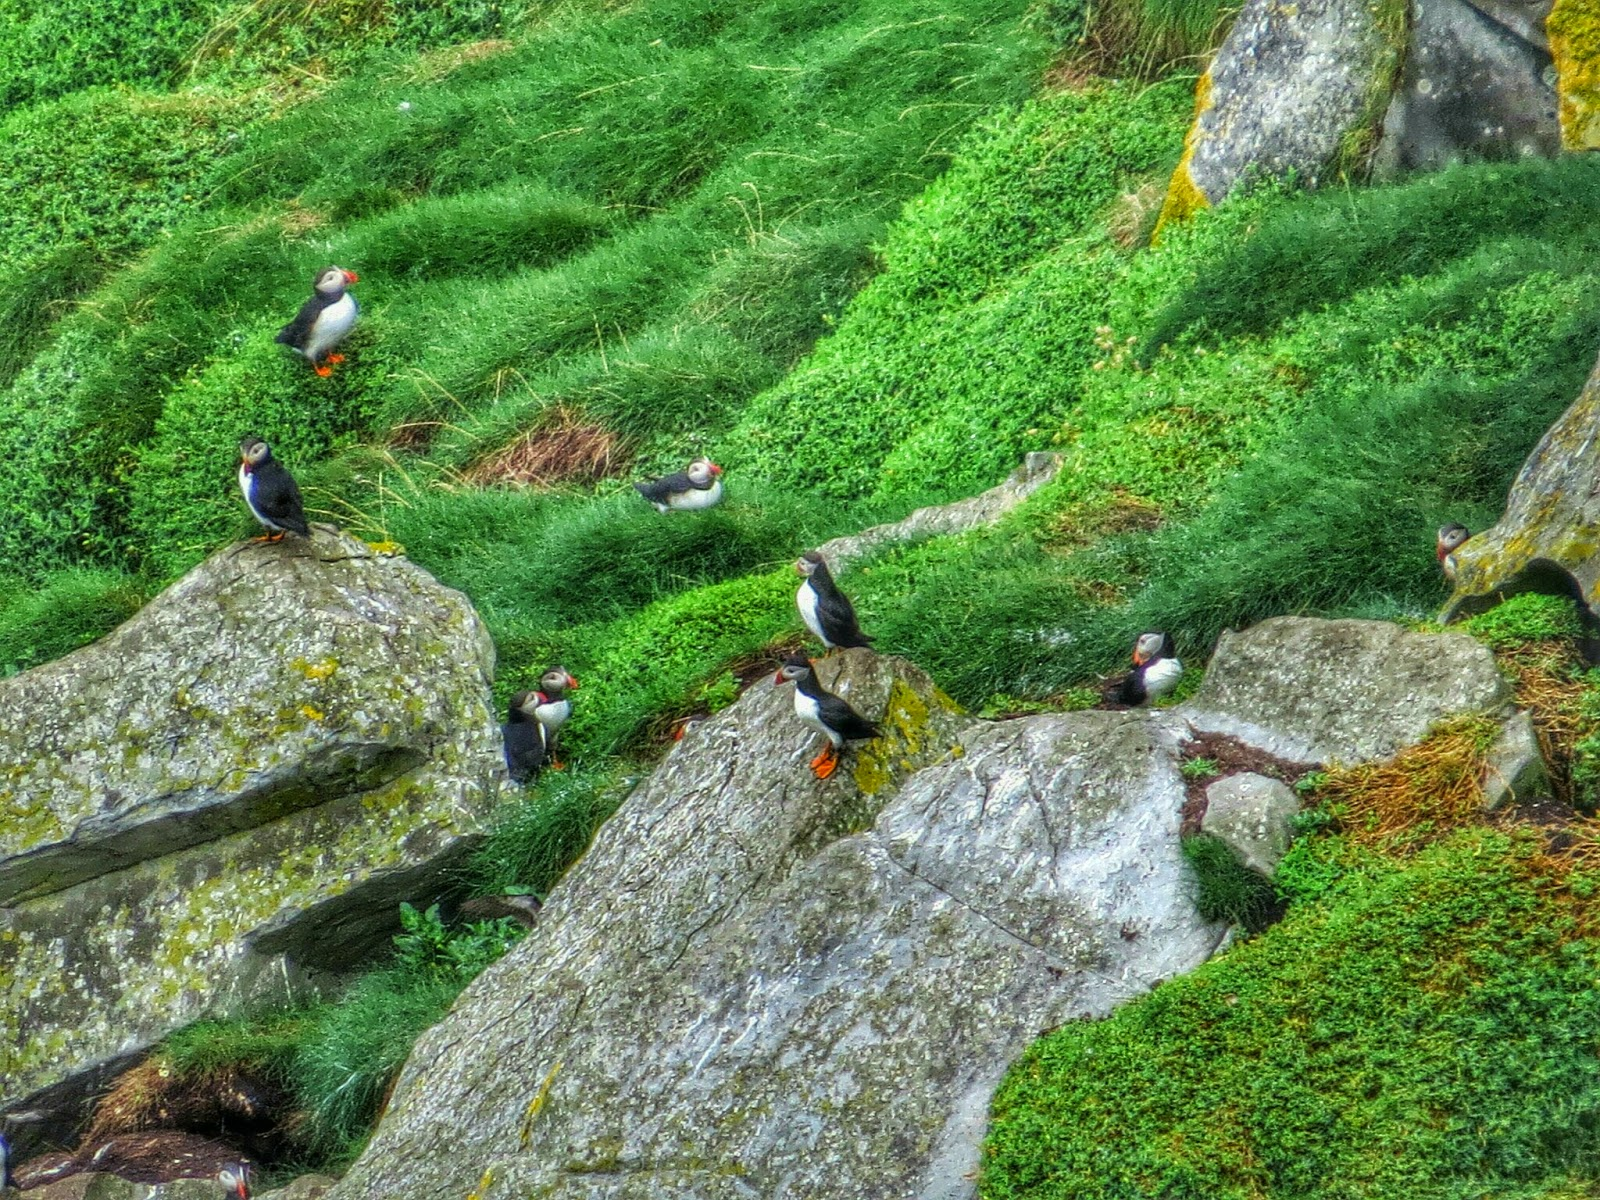 Puffins at the Cliffs of Moher